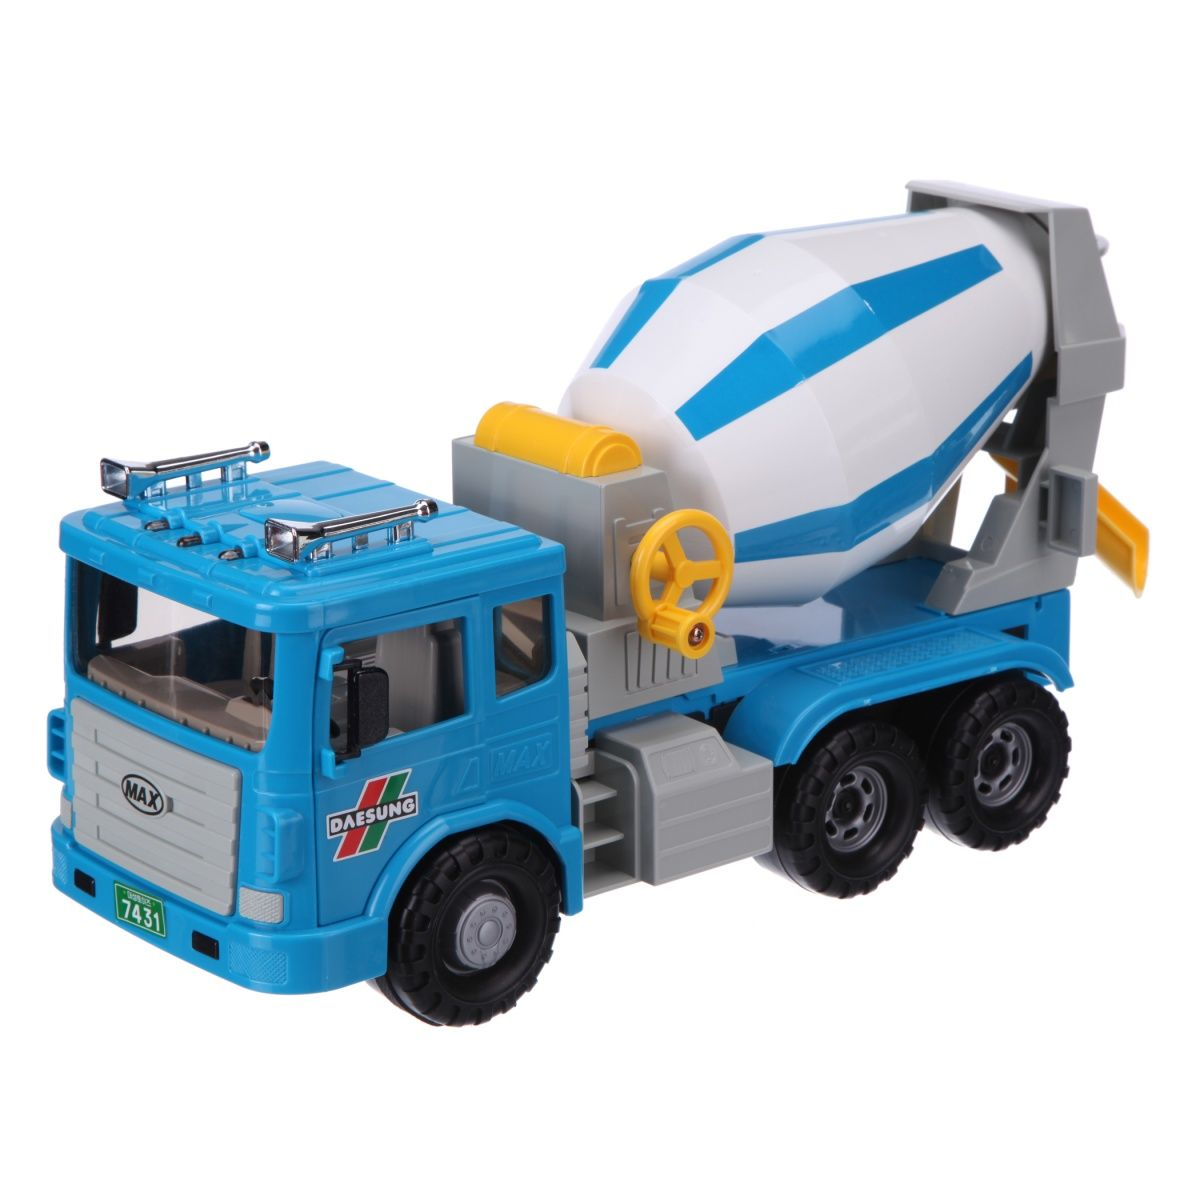 Daesung Max Cement Mixer Cars Bikes Cement Mixers Daesung Cement